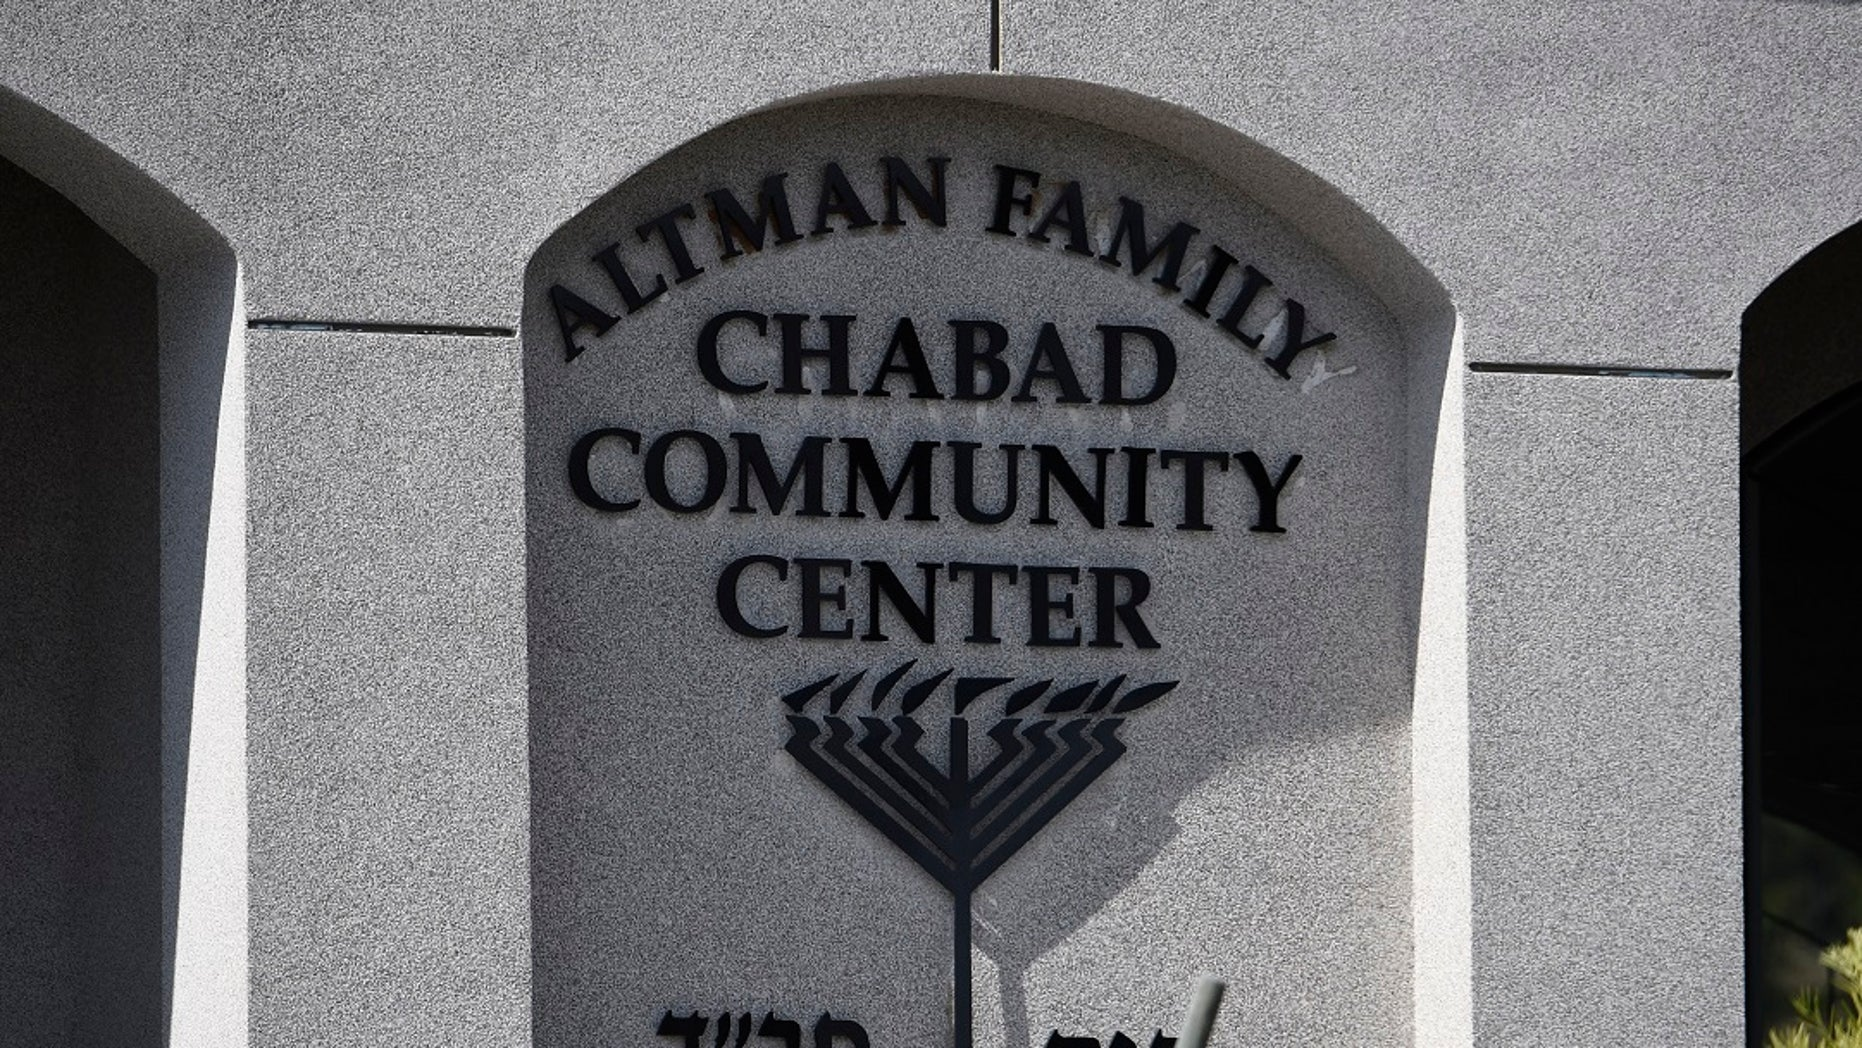 An exterior view of the Altman Family Chabad Community Center at the Chabad of Poway Synagogue Saturday, April 27, 2019, in Poway, Calif. Several people were injured in a shooting at the synagogue. (Associated Press)